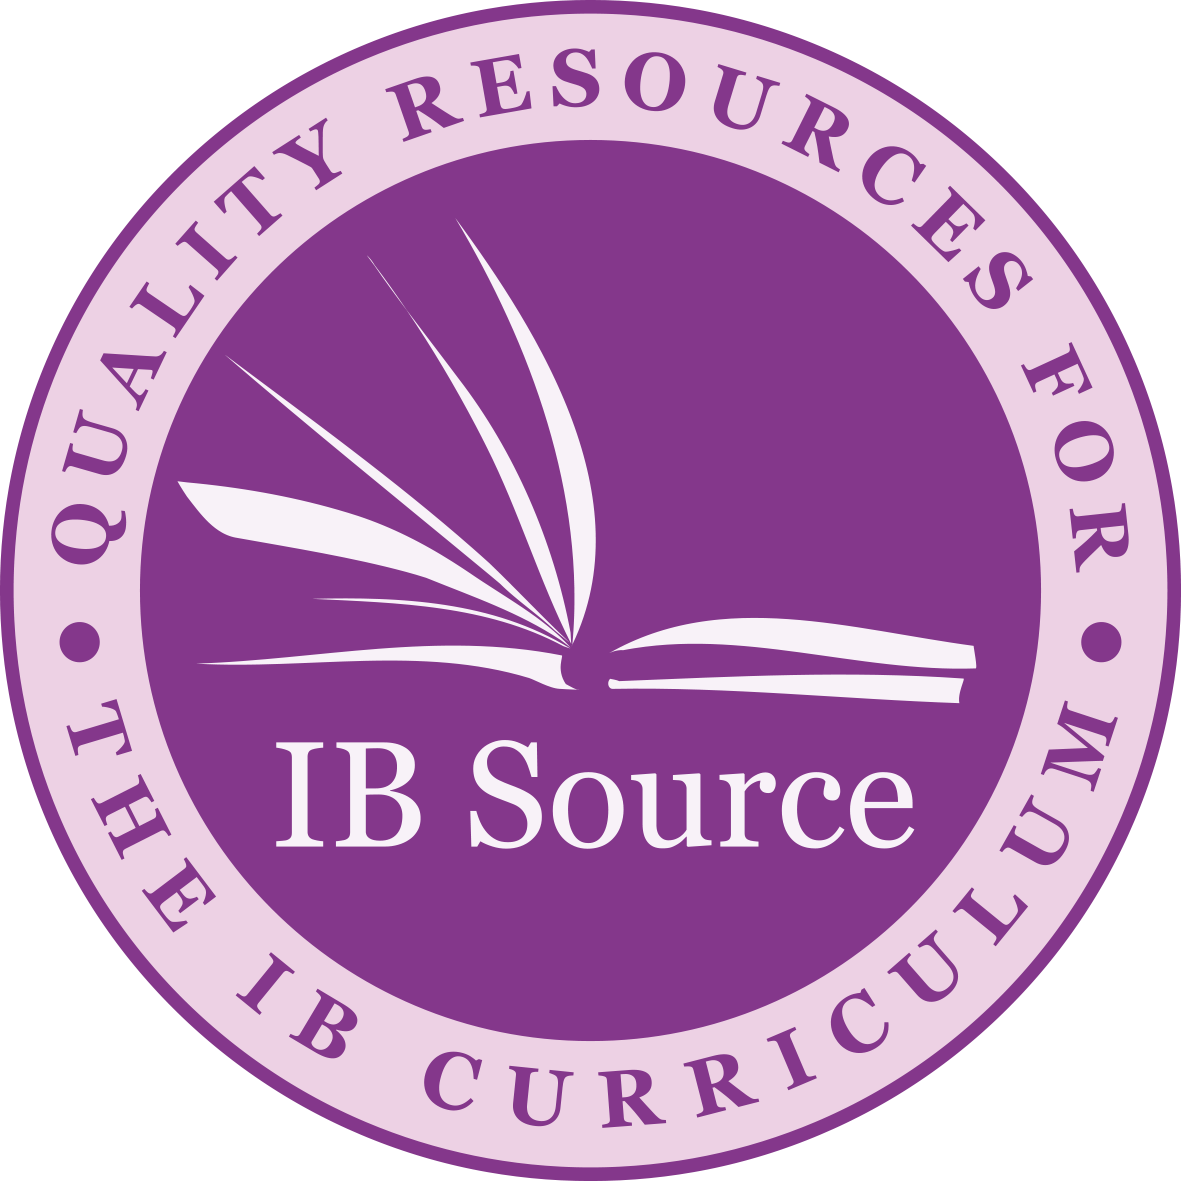 IBSOURCE TEACHER SAMPLE CENTER